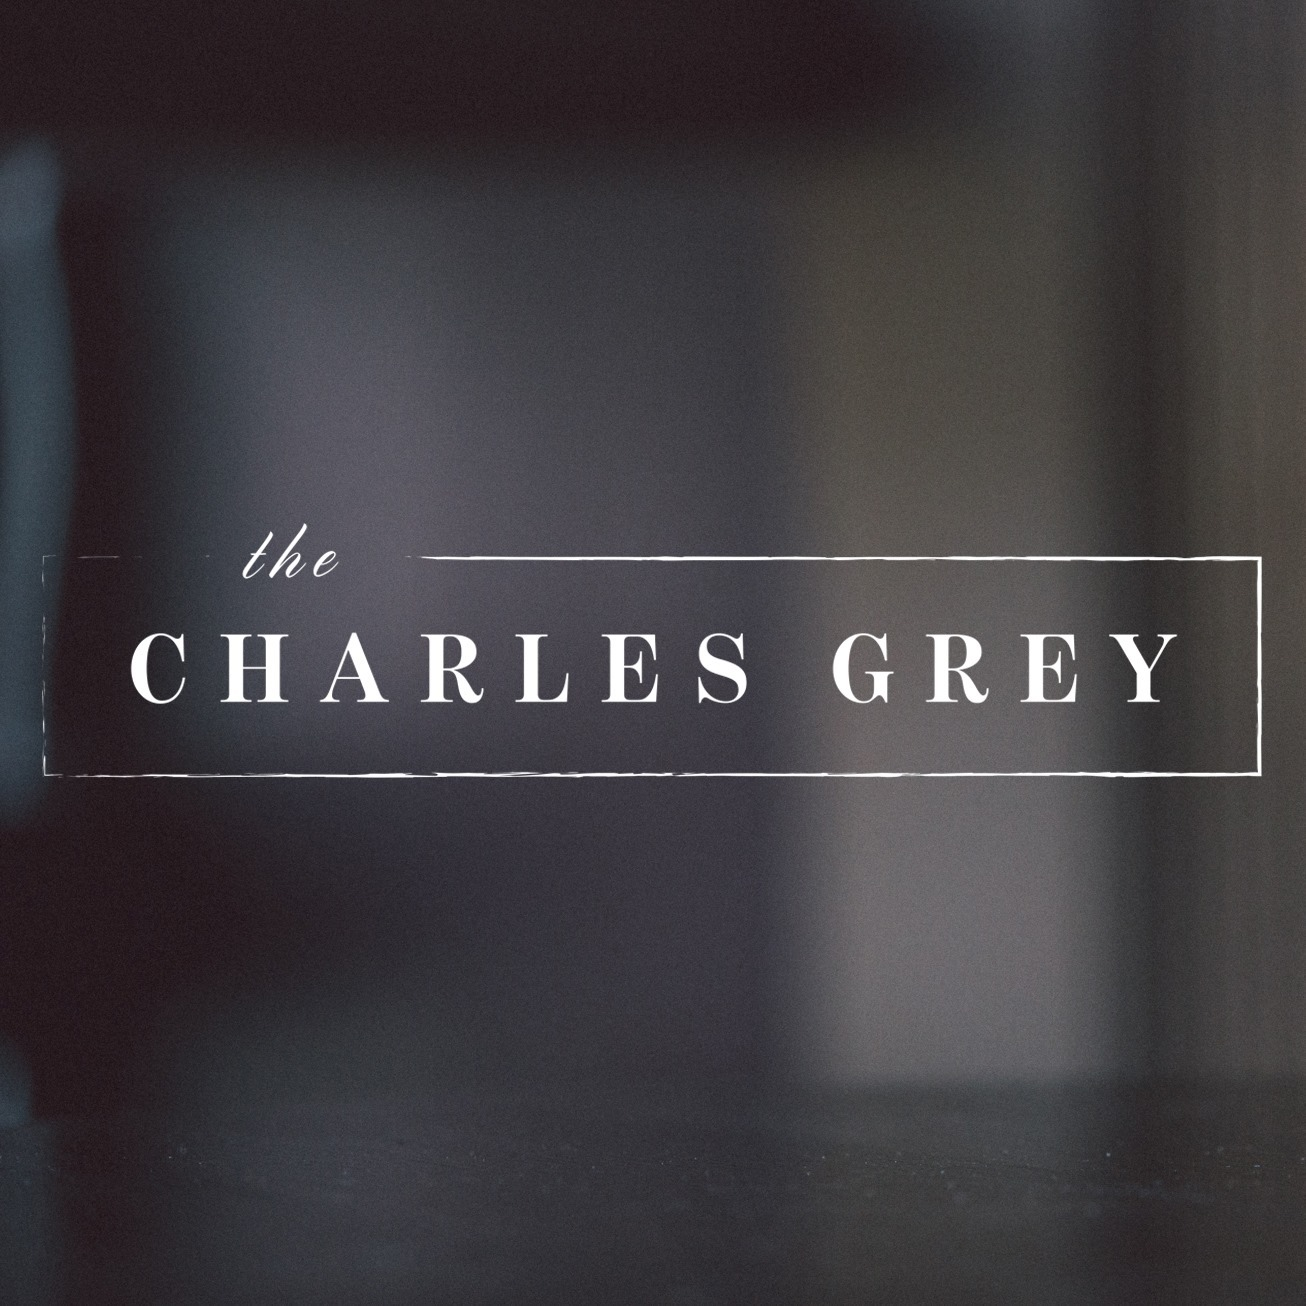 The Charles Grey